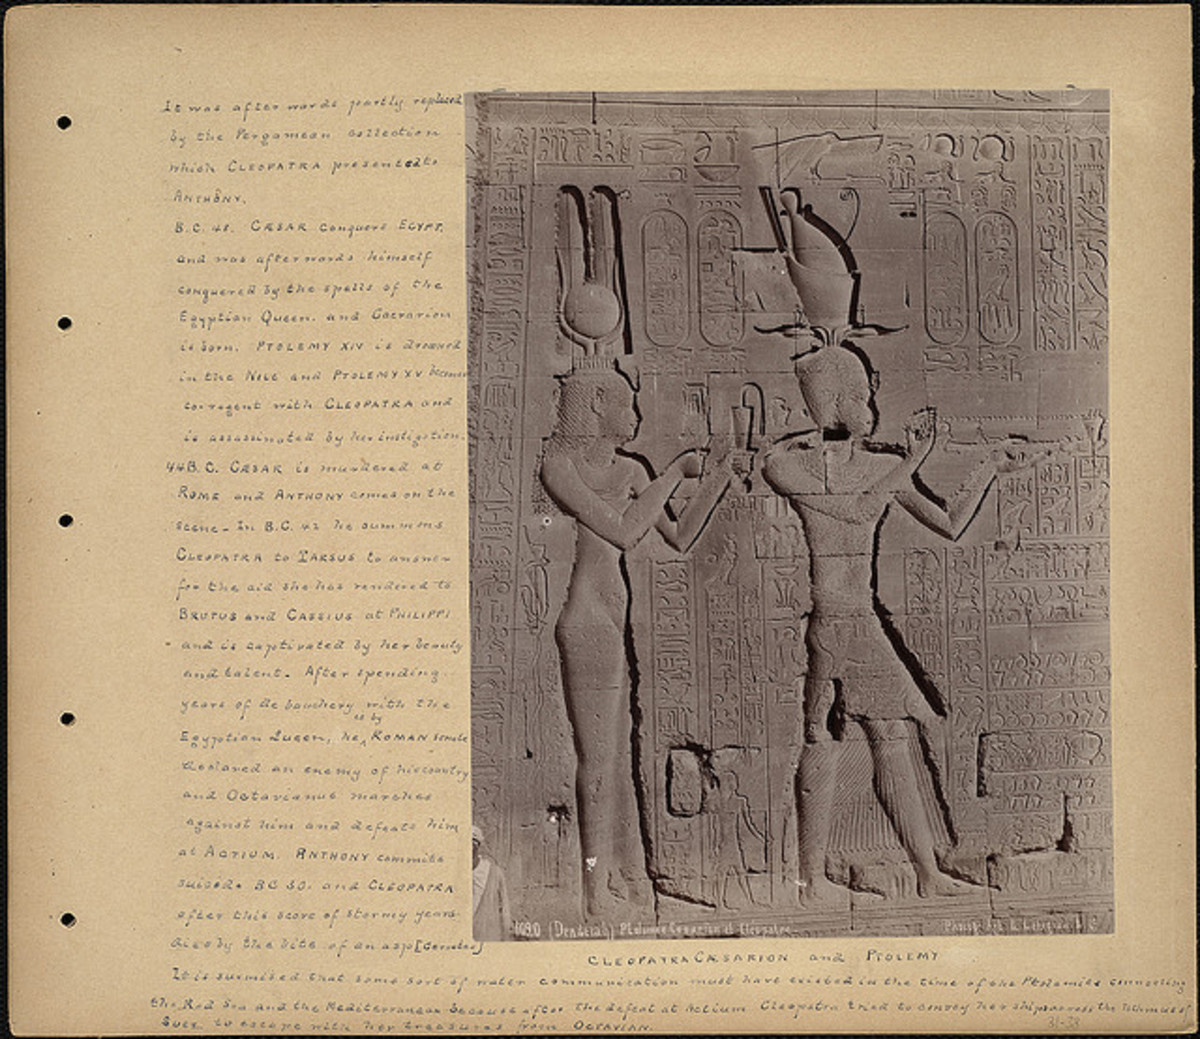 Cleopatra Cæsarion and Ptolemy, Boston Public Library, CC, some rights reserved via Flickr